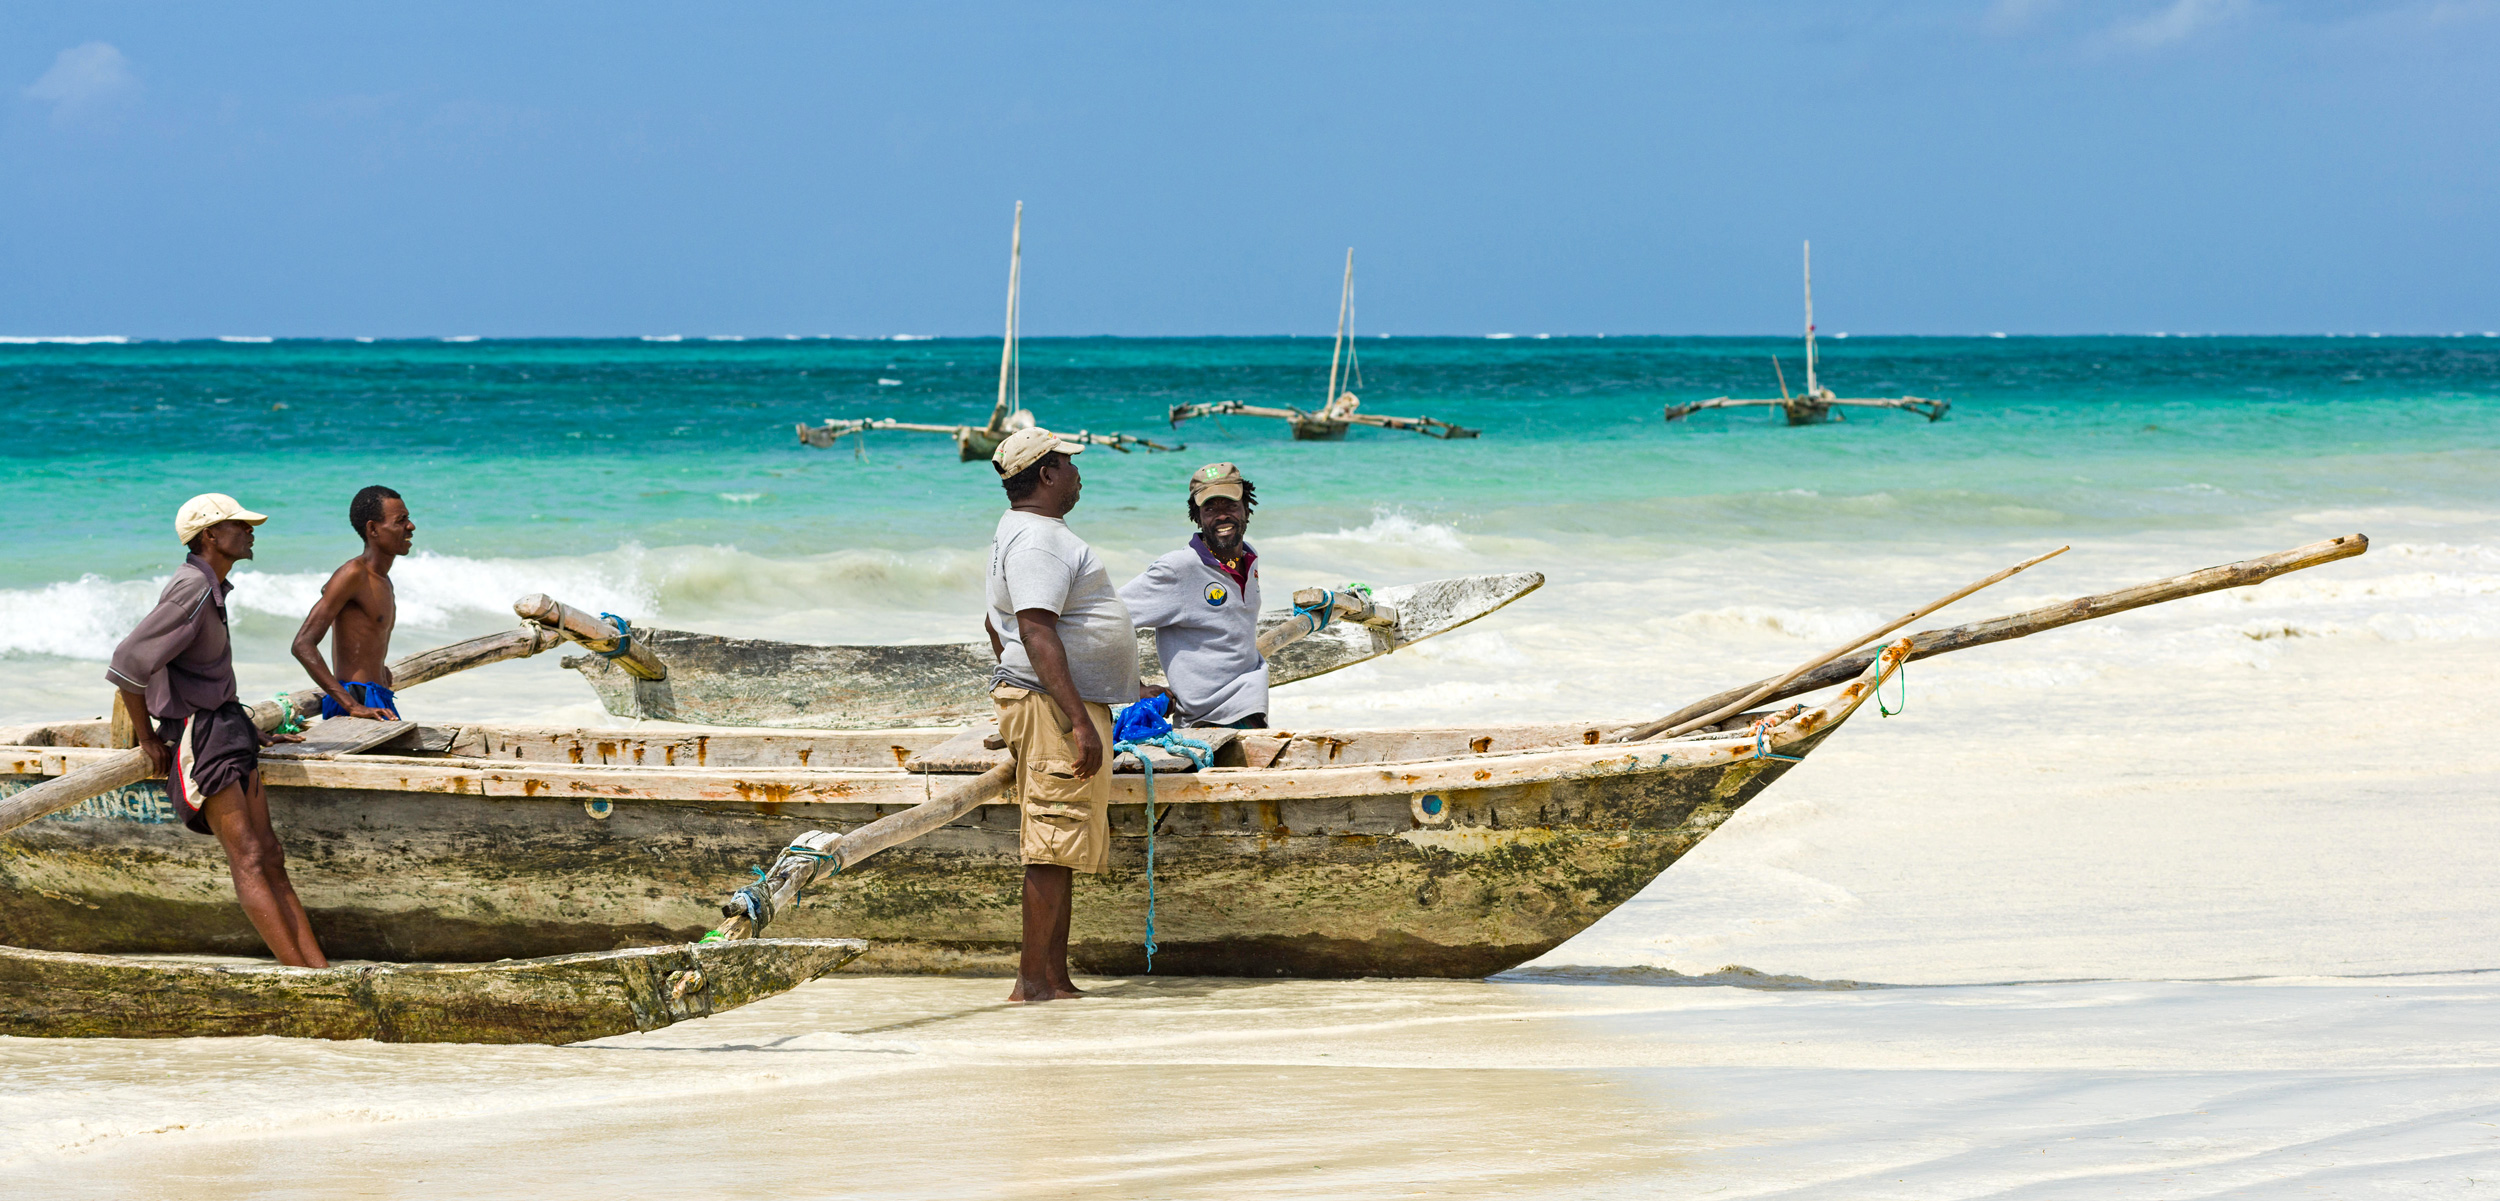 Fisherman with traditional dhow fishing boat at Diani beach, Kenya